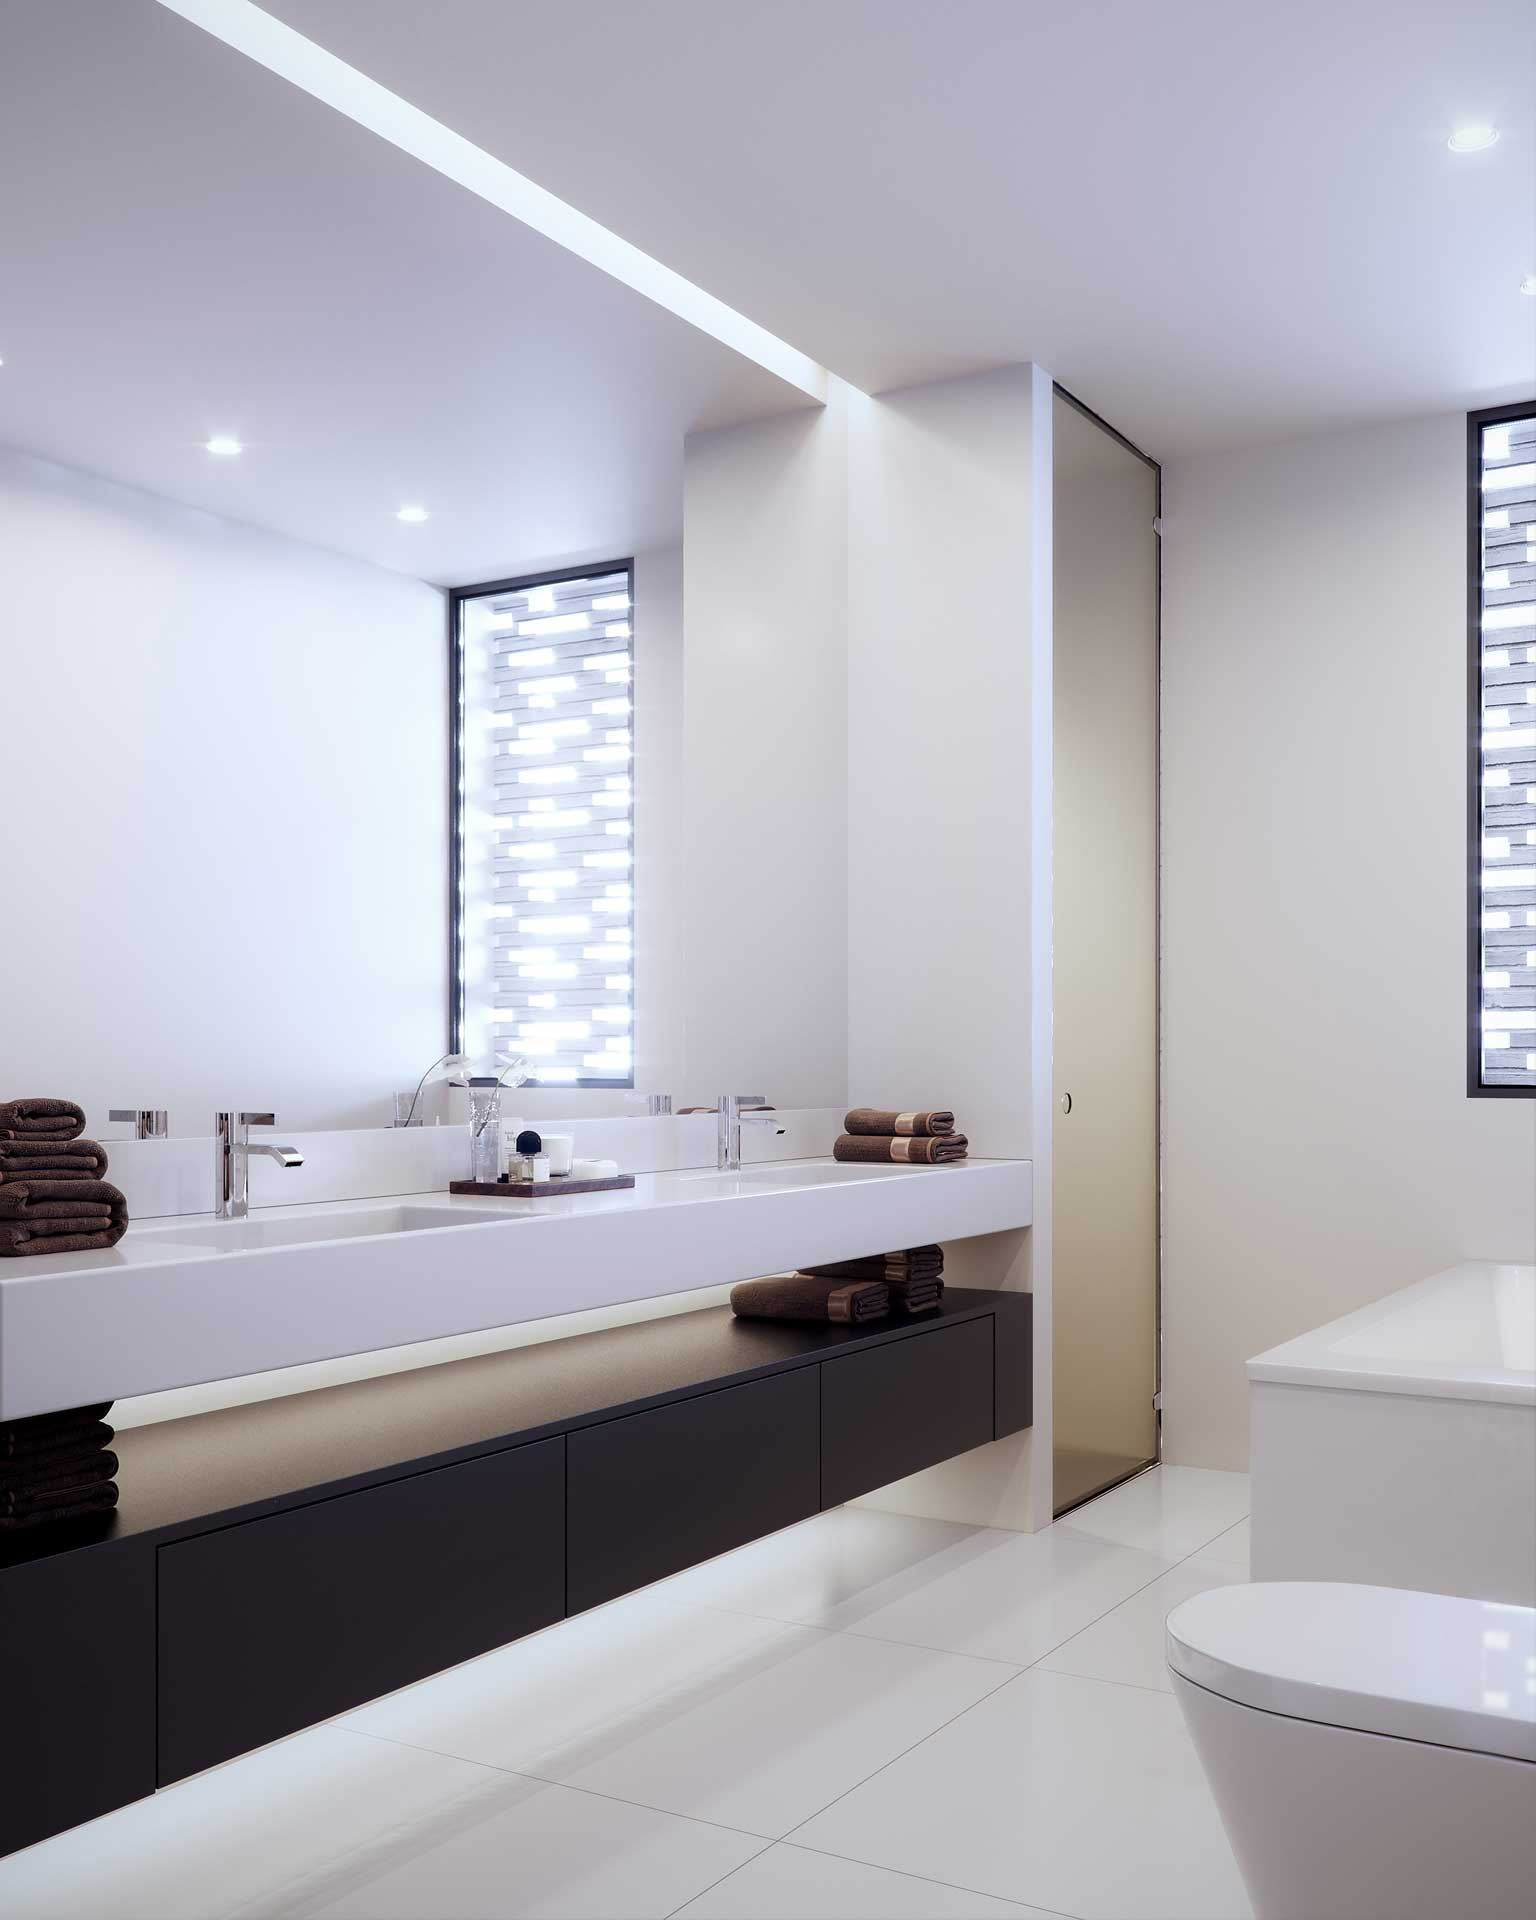 1364-01-SOL-i-12_Ost-B_2nd-floor_bathroom_R01